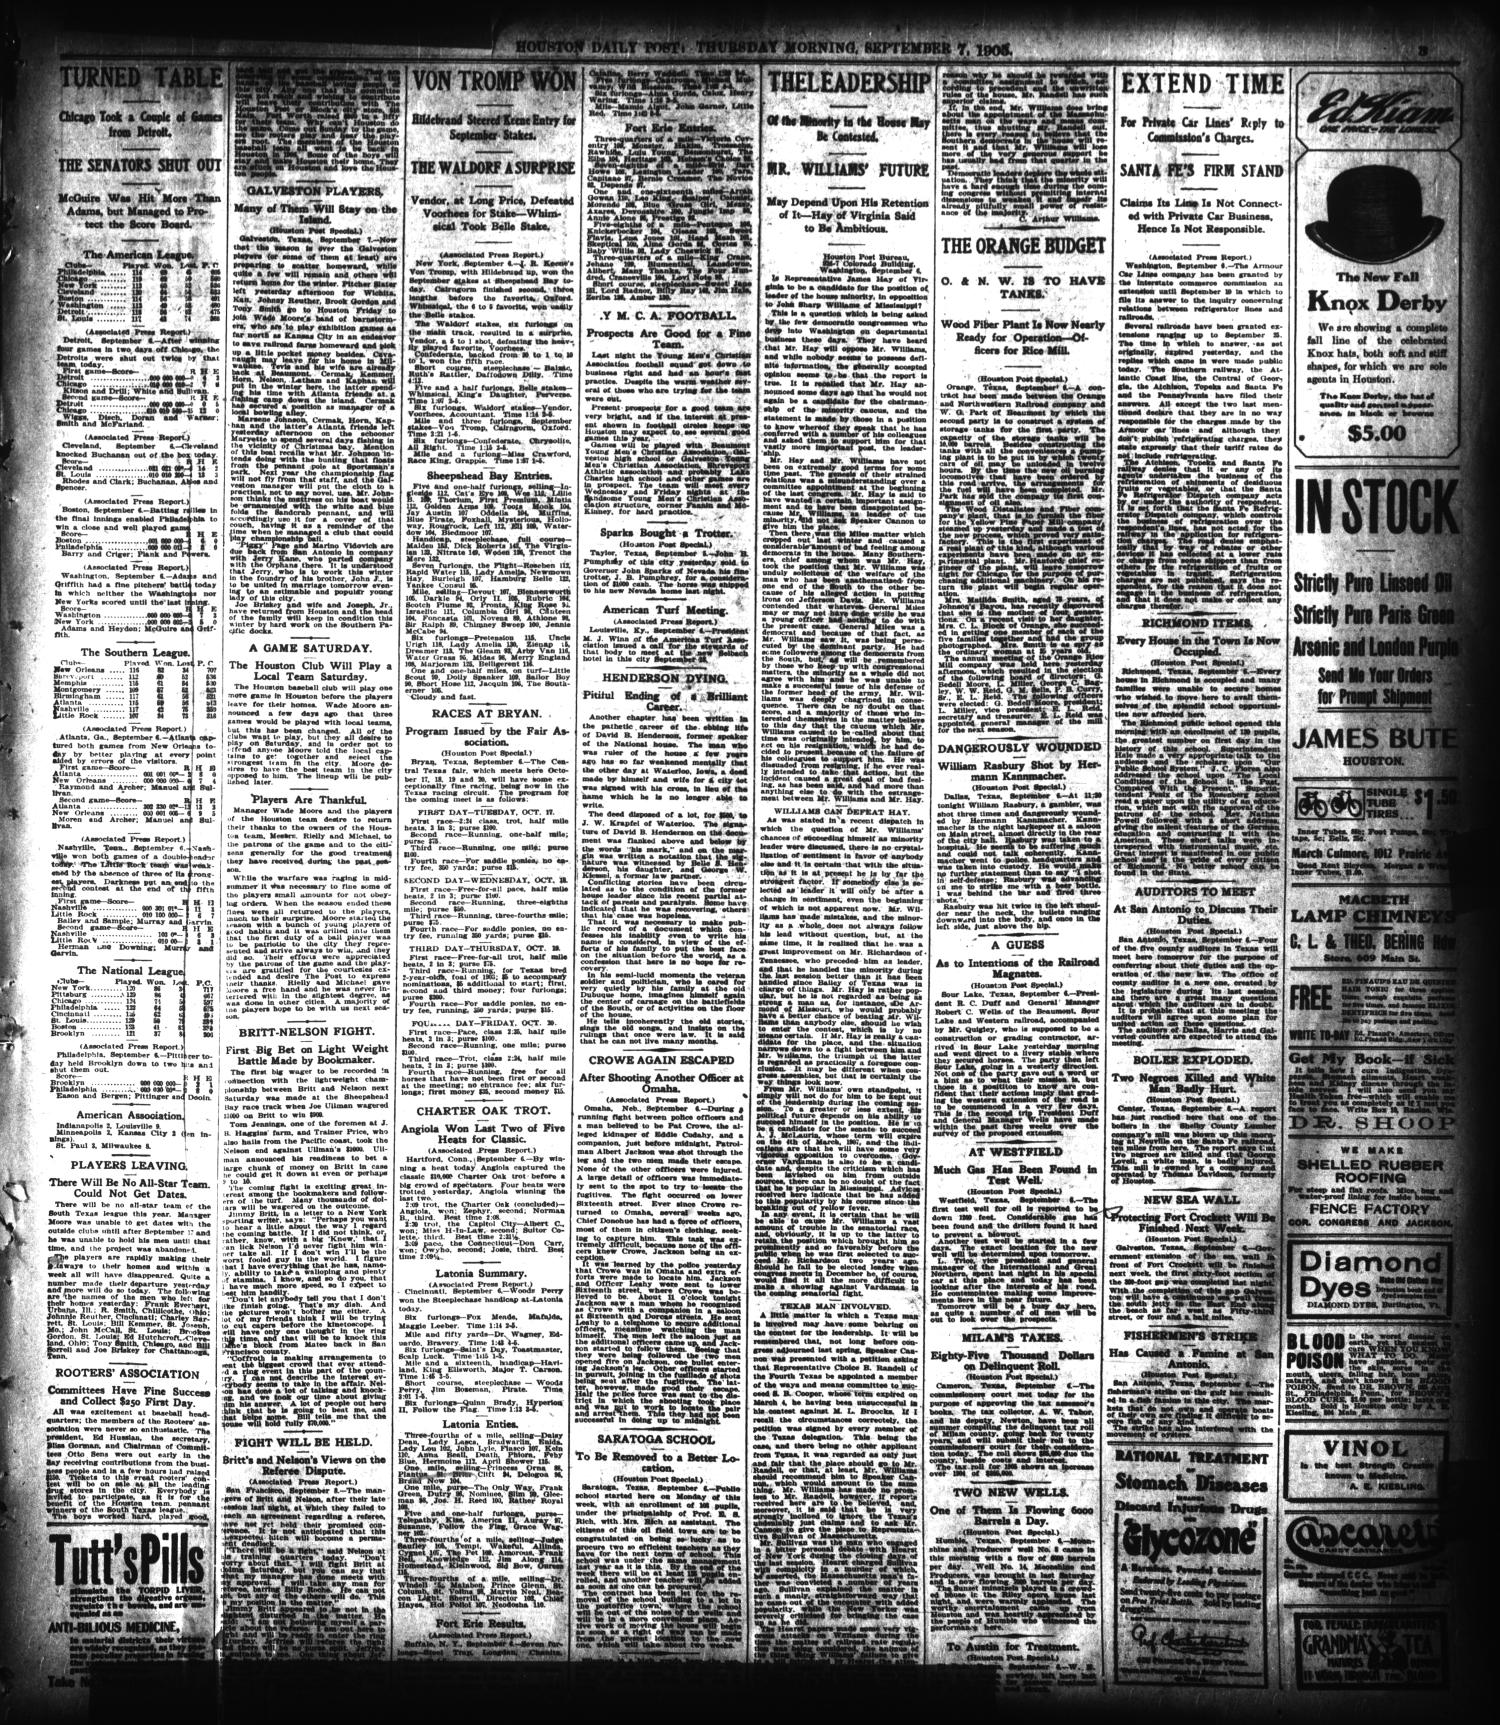 The Houston Post. (Houston, Tex.), Vol. 21, No. 176, Ed. 1 Thursday,  September 7, 1905 - Page 3 of 12 - The Portal to Texas History